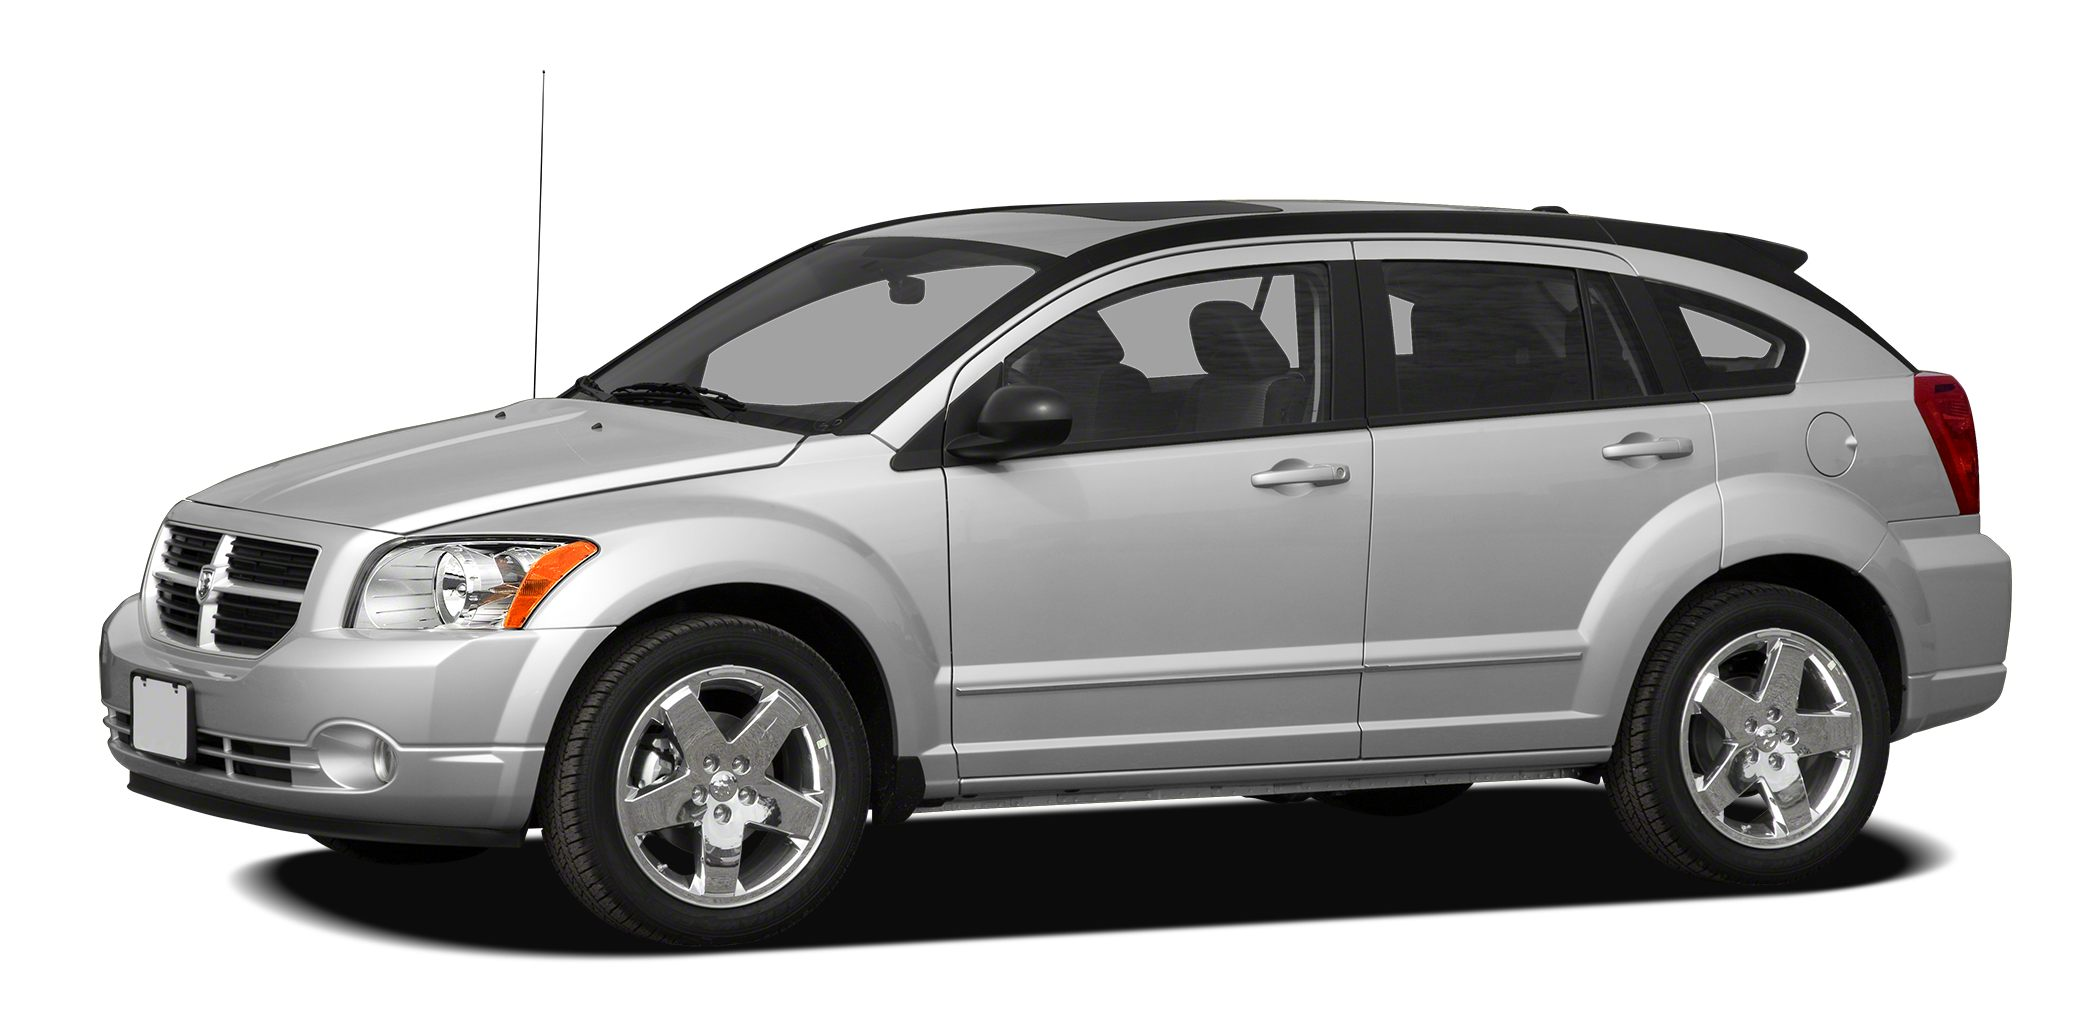 2011 Dodge Caliber Mainstreet Dodge Certified Clean LOW MILES - 57481 EPA 27 MPG Hwy23 MPG Ci